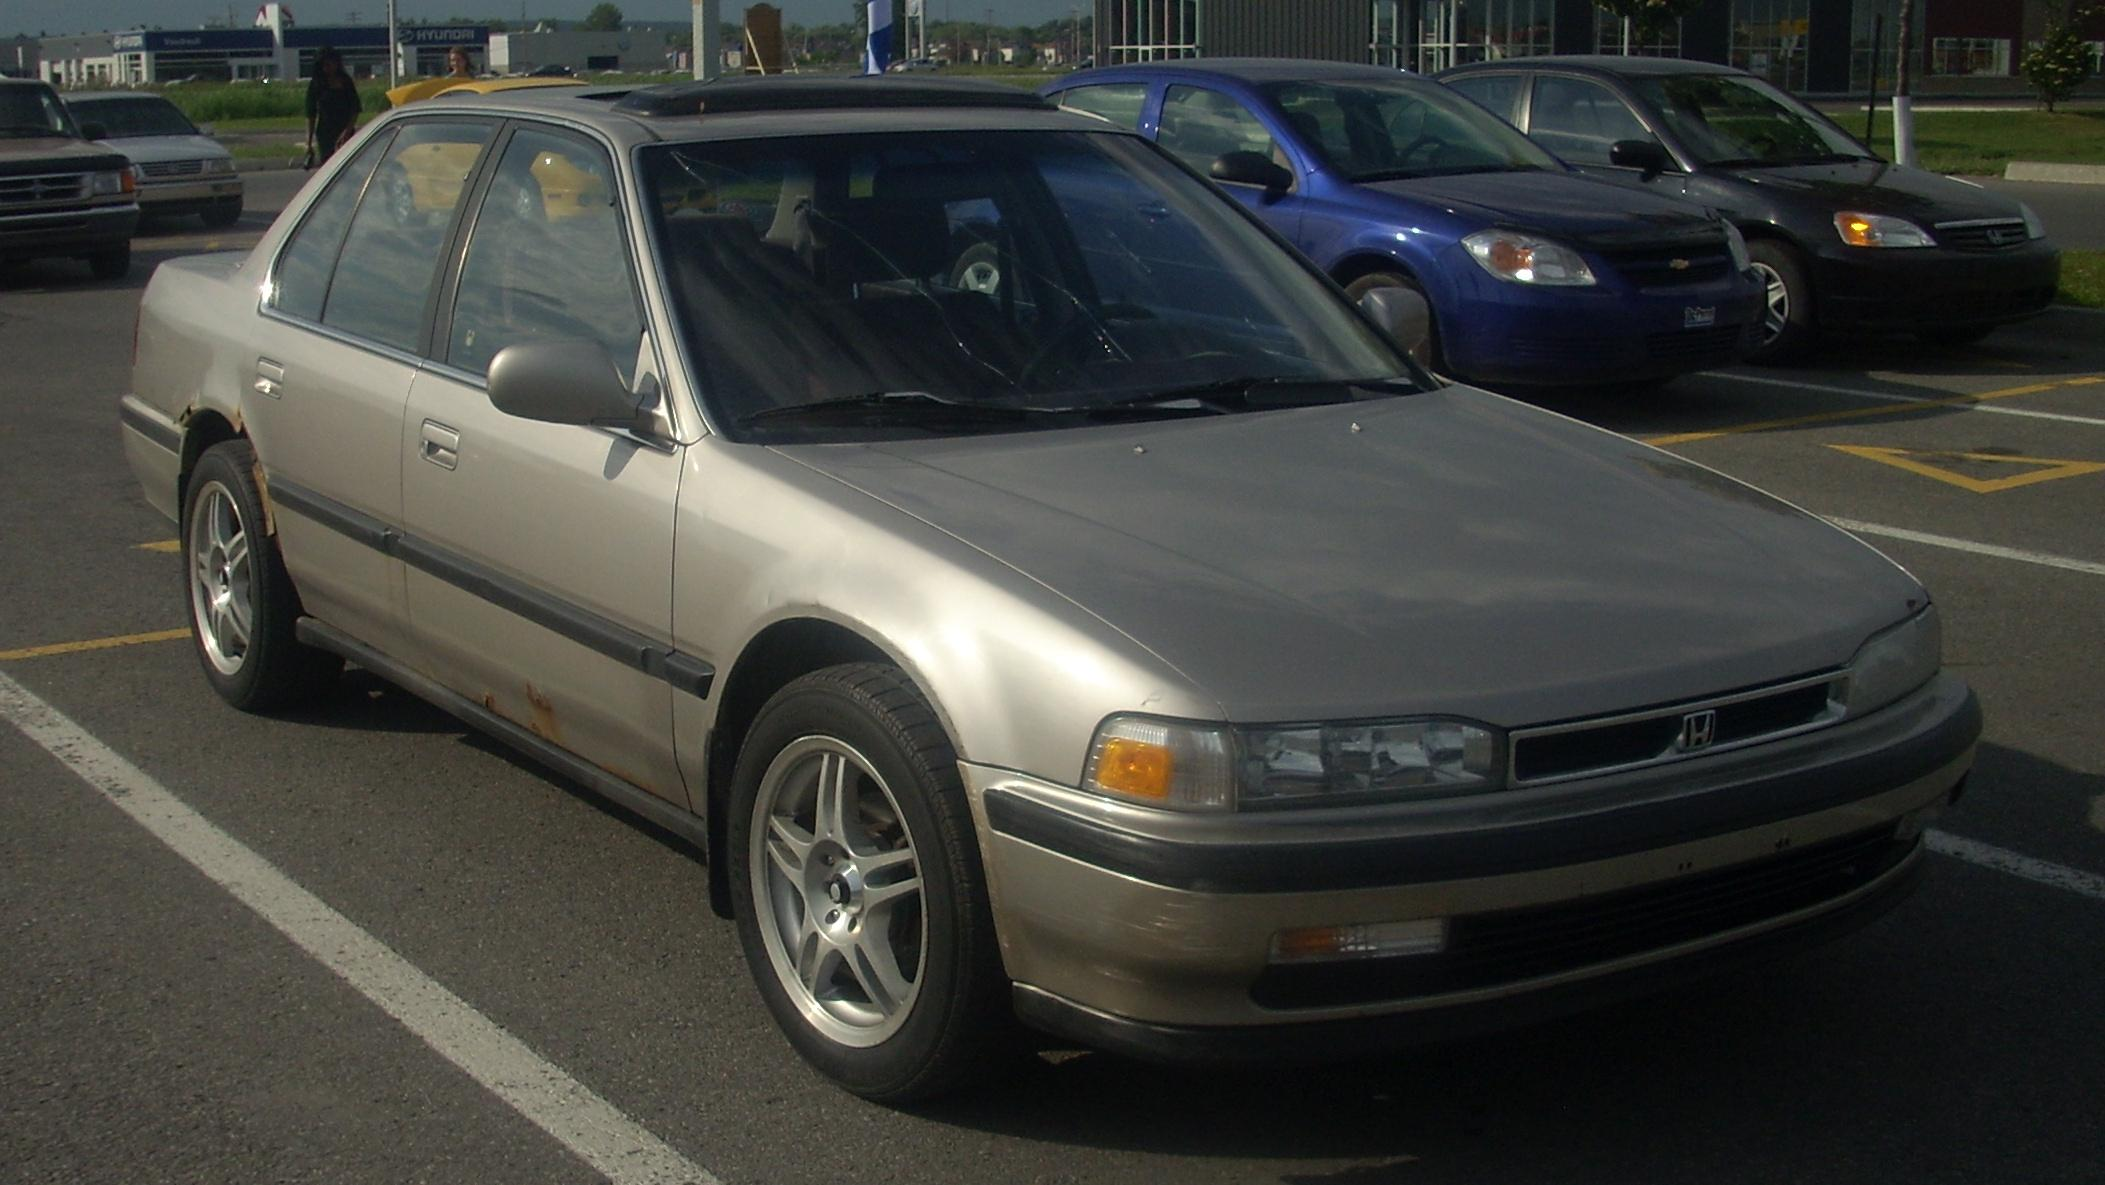 file 39 90 39 91 honda accord sedan jpg wikimedia commons